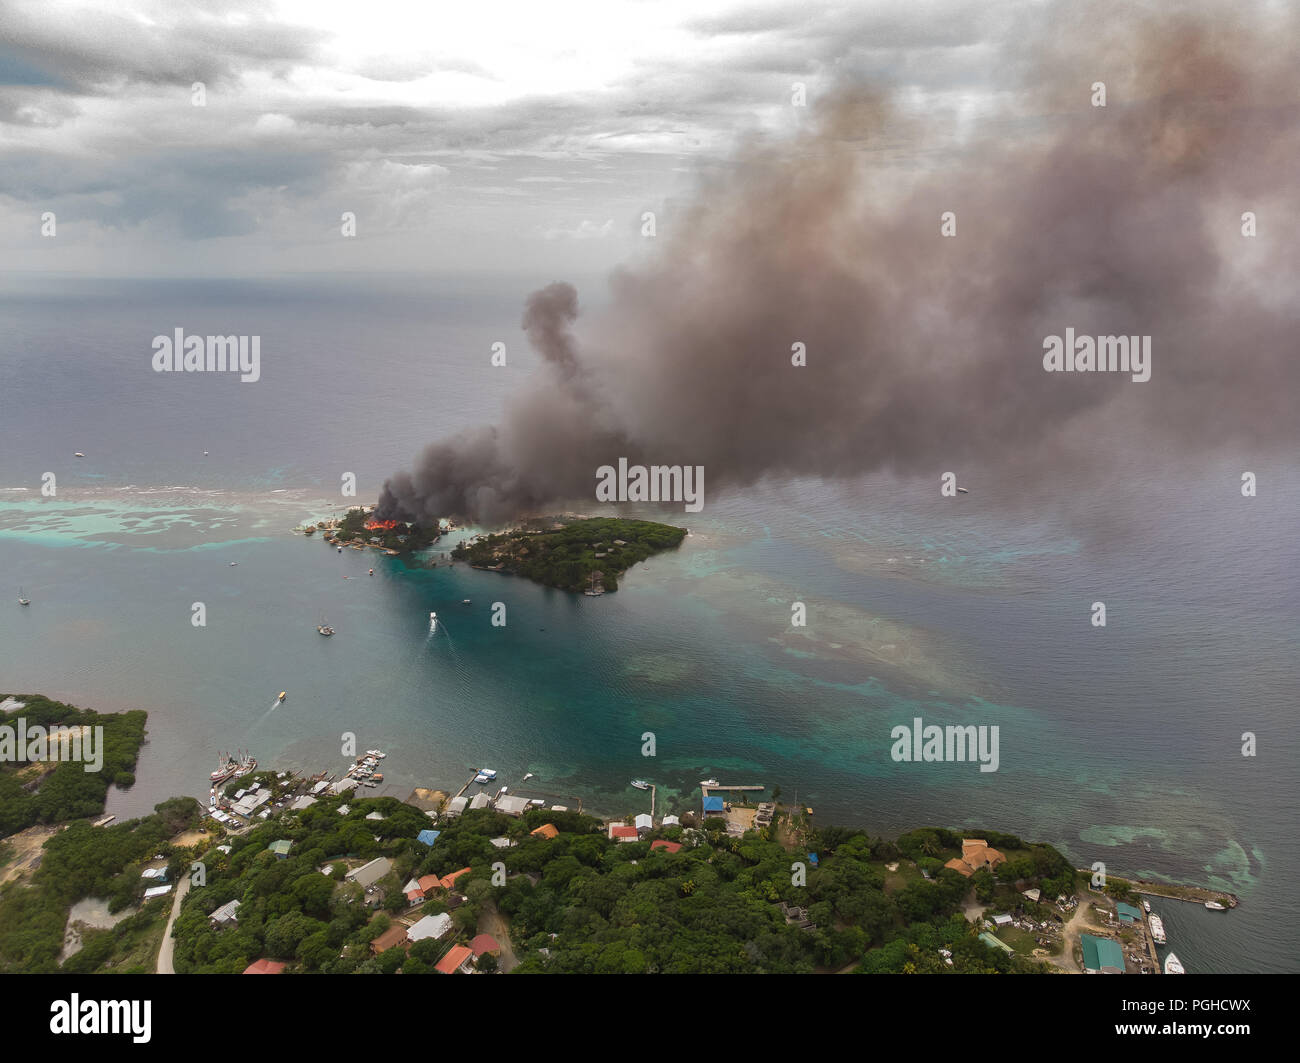 Disaster Fire On Small Caribbean Island - Stock Image